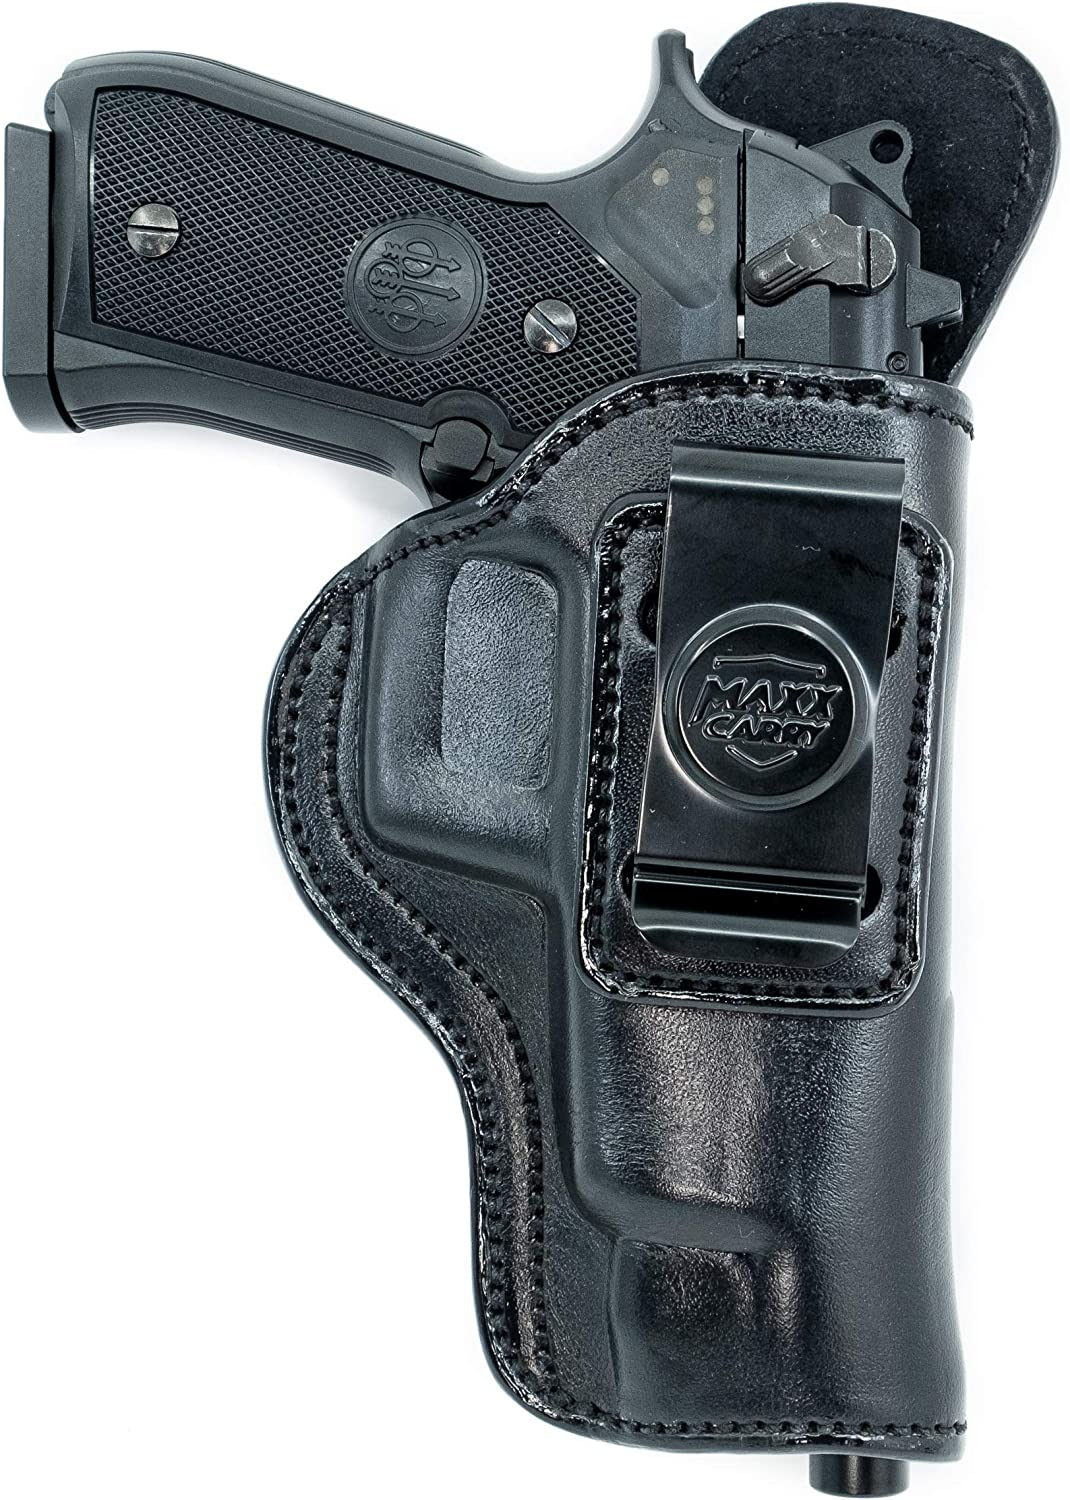 Maxx Carry Baltimore Mall IWB Leather Gun Holster Virginia Beach Mall Compatible 9mm G34 Glock with